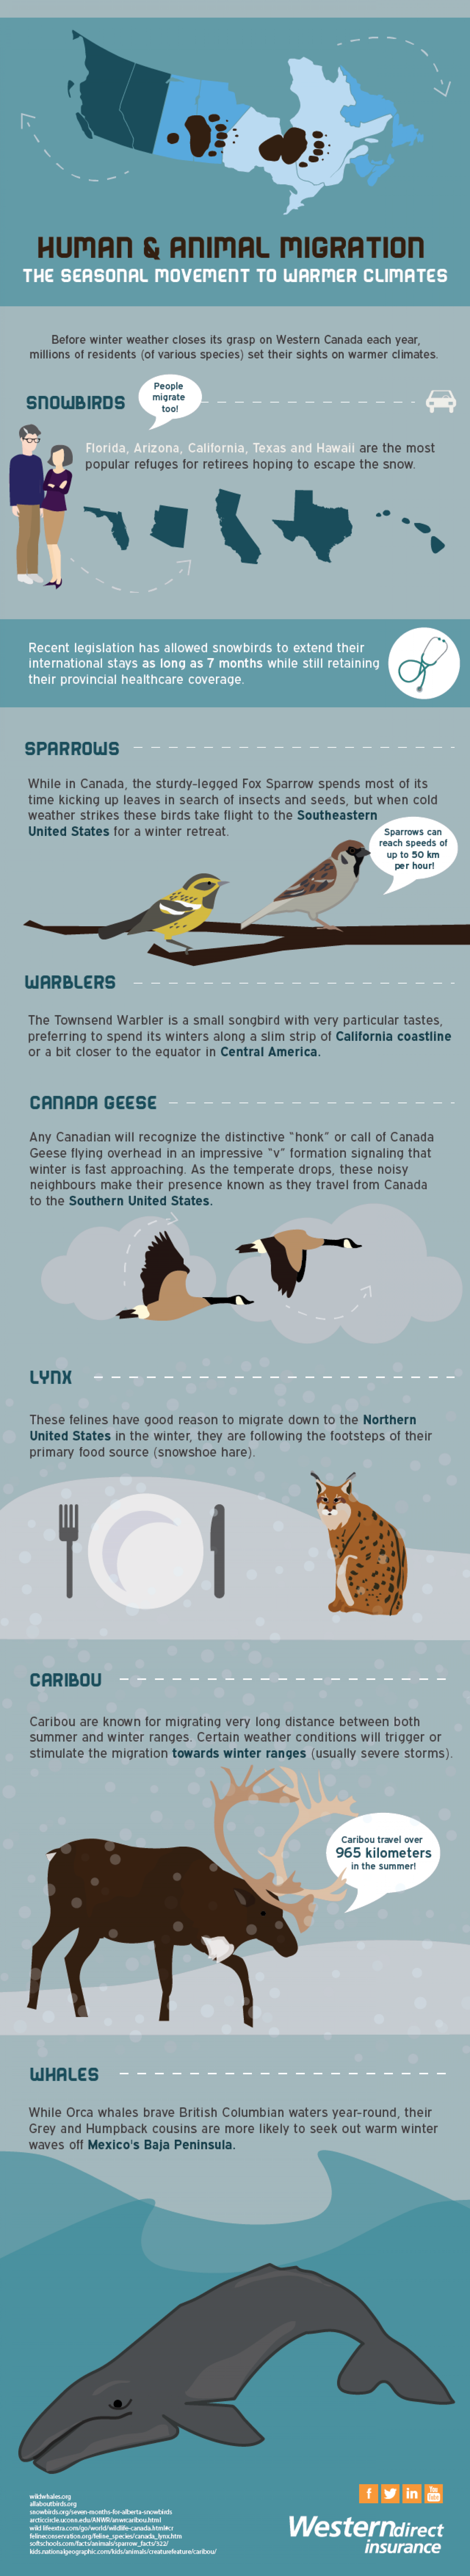 Human & Animal Migration Infographic